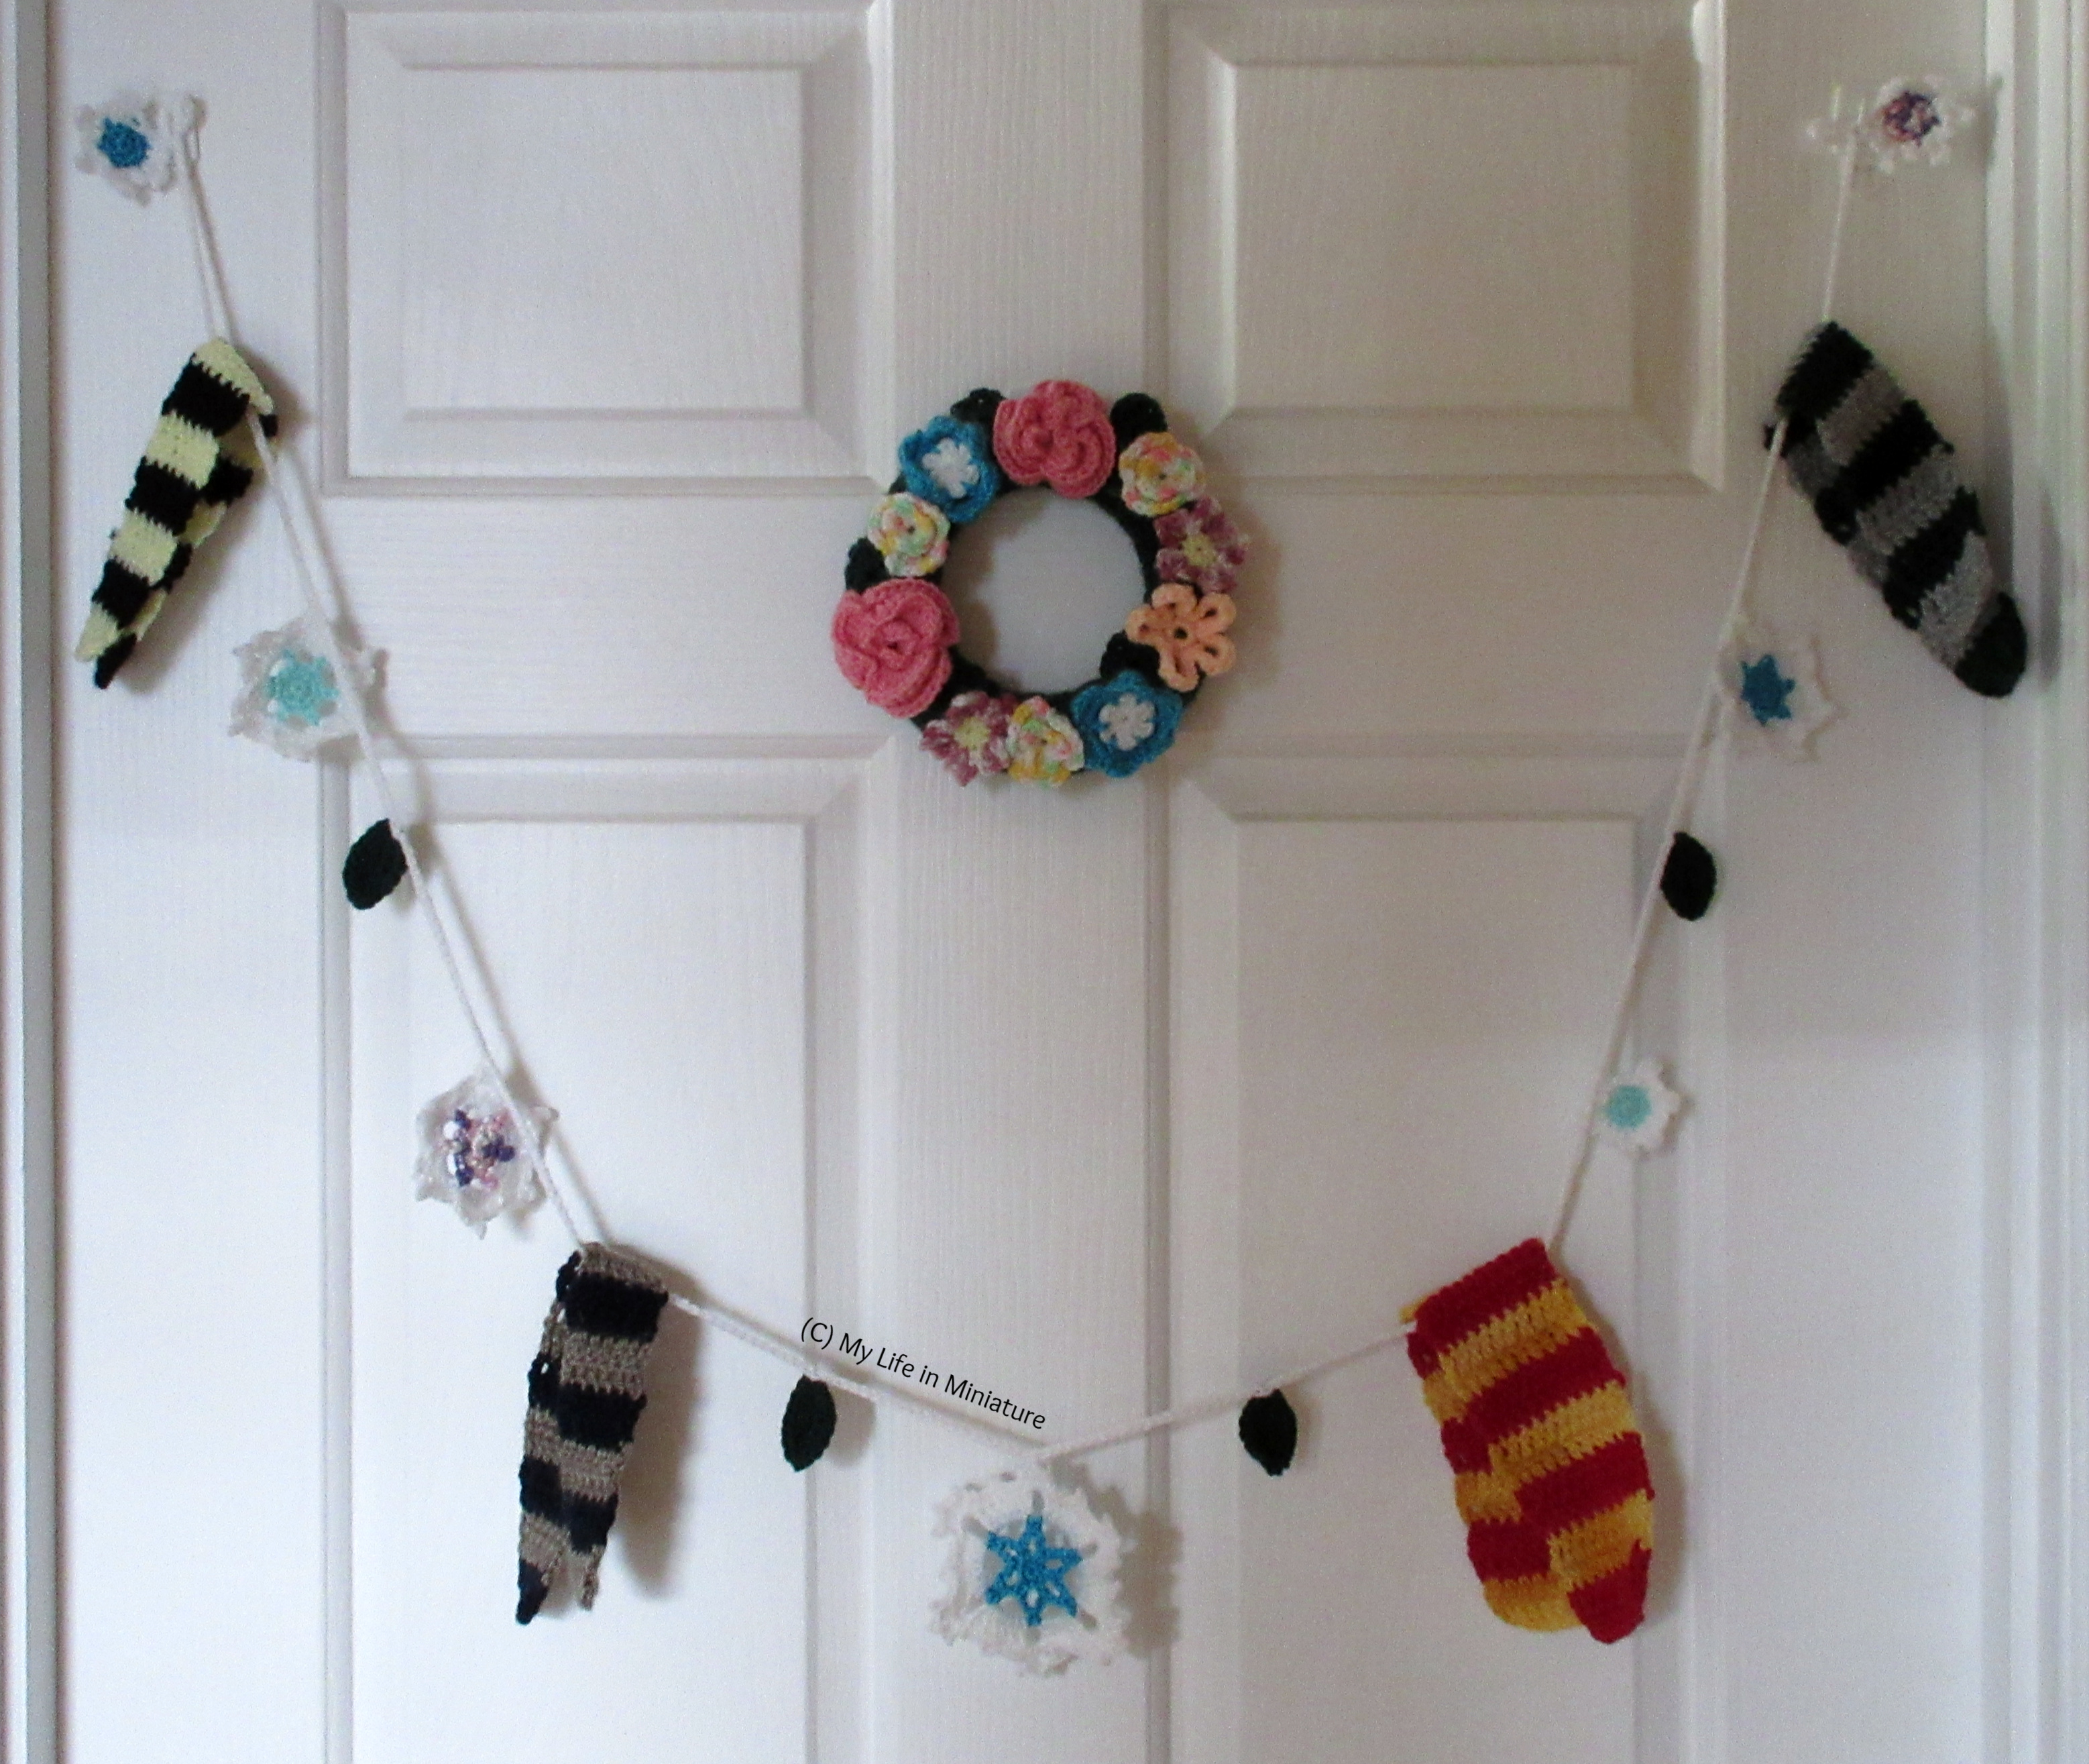 A crocheted garland, made of scarves, snowflakes, and some leaves, hangs on a white door below a small floral crocheted wreath.